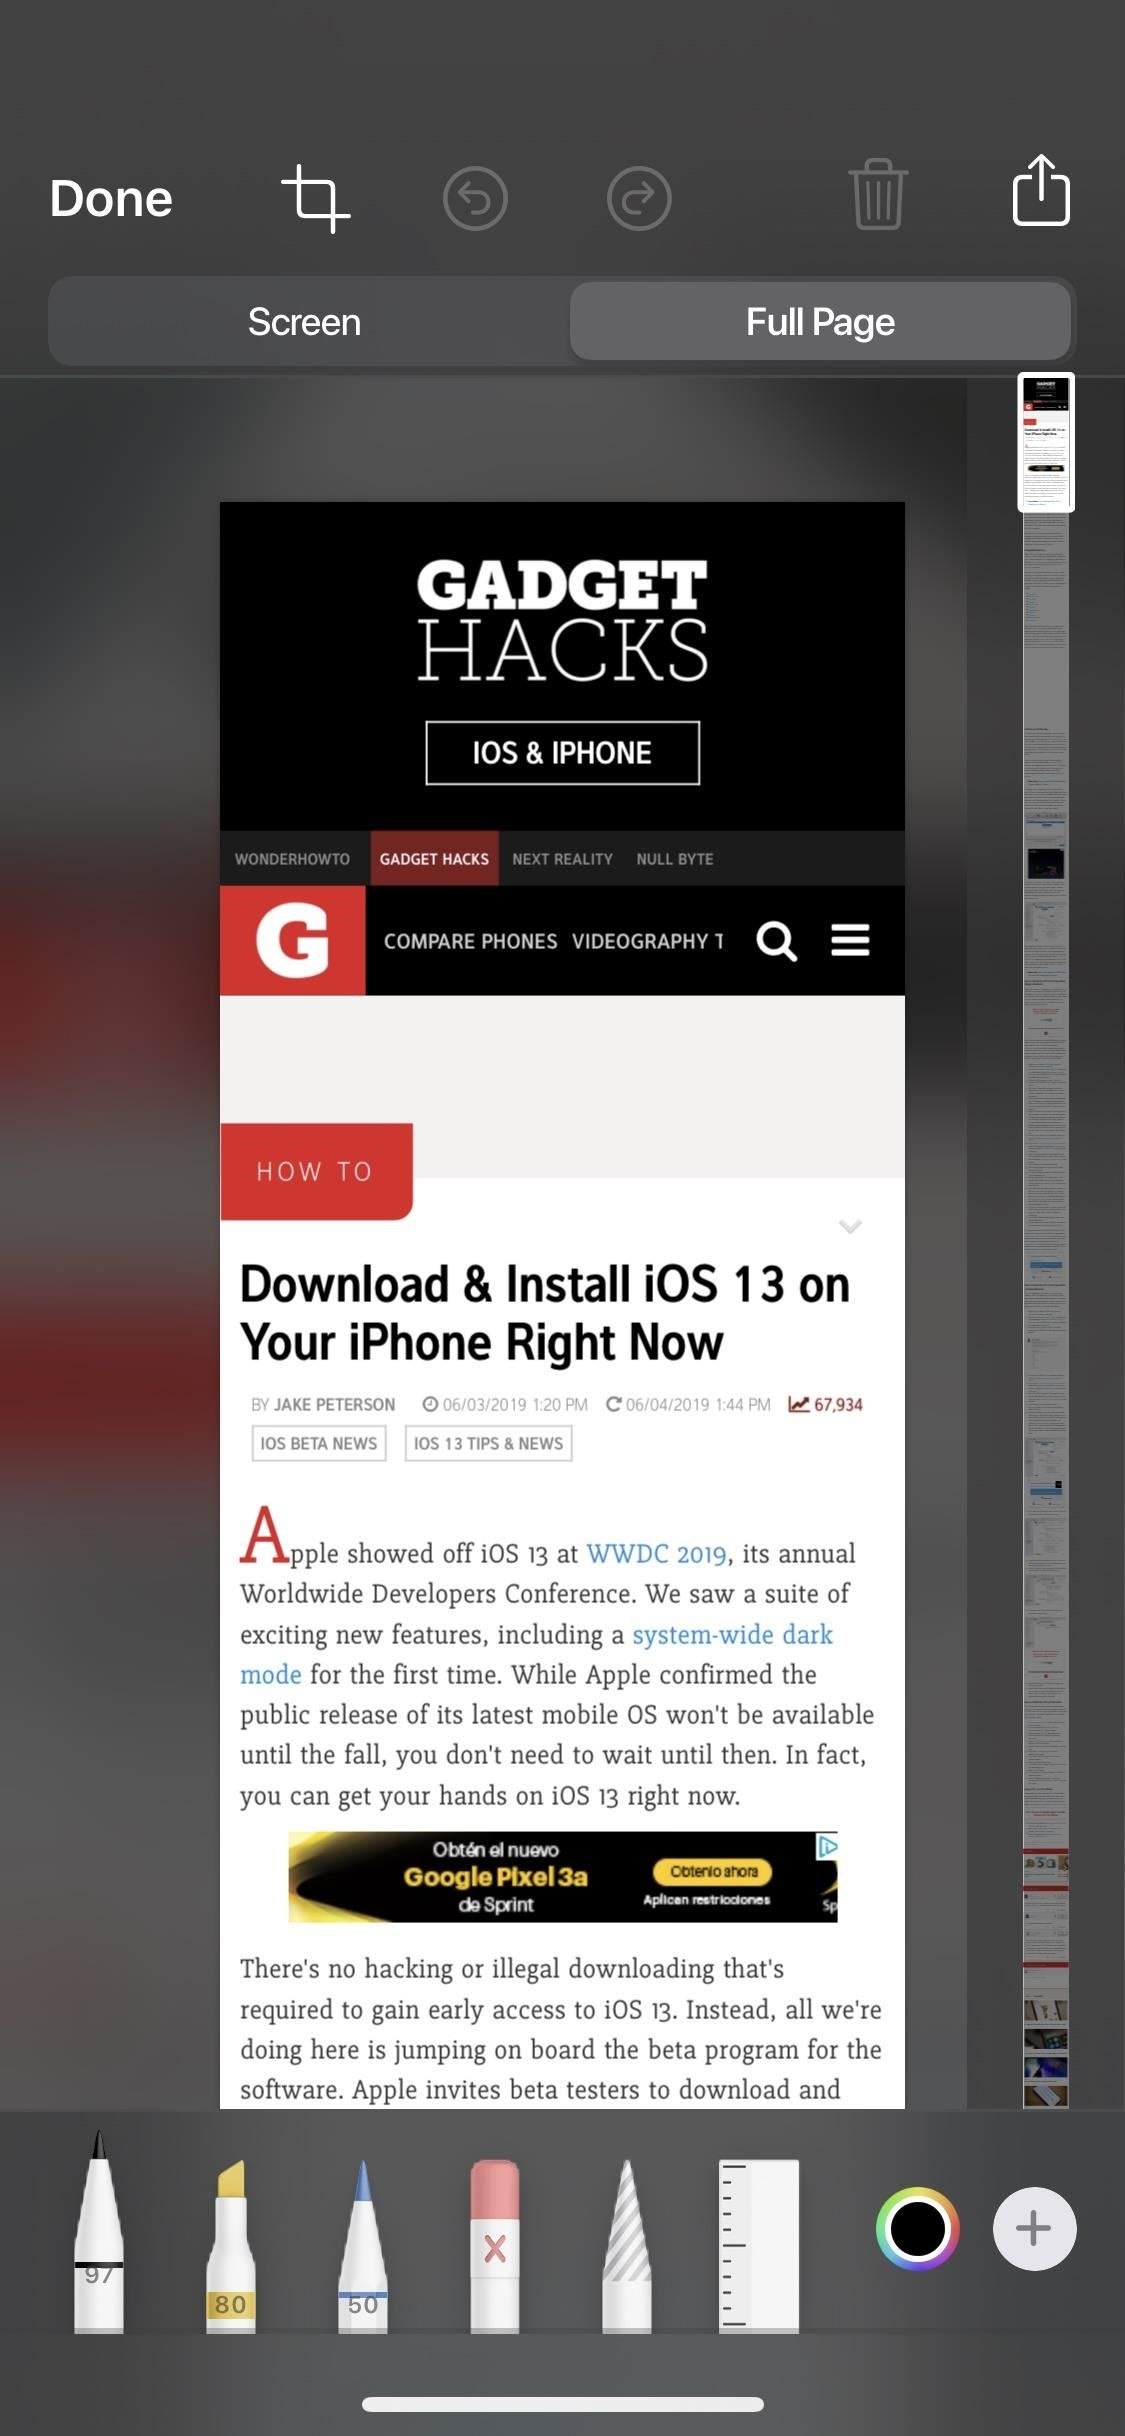 How to Take Scrolling Screenshots of Entire Webpages in iOS